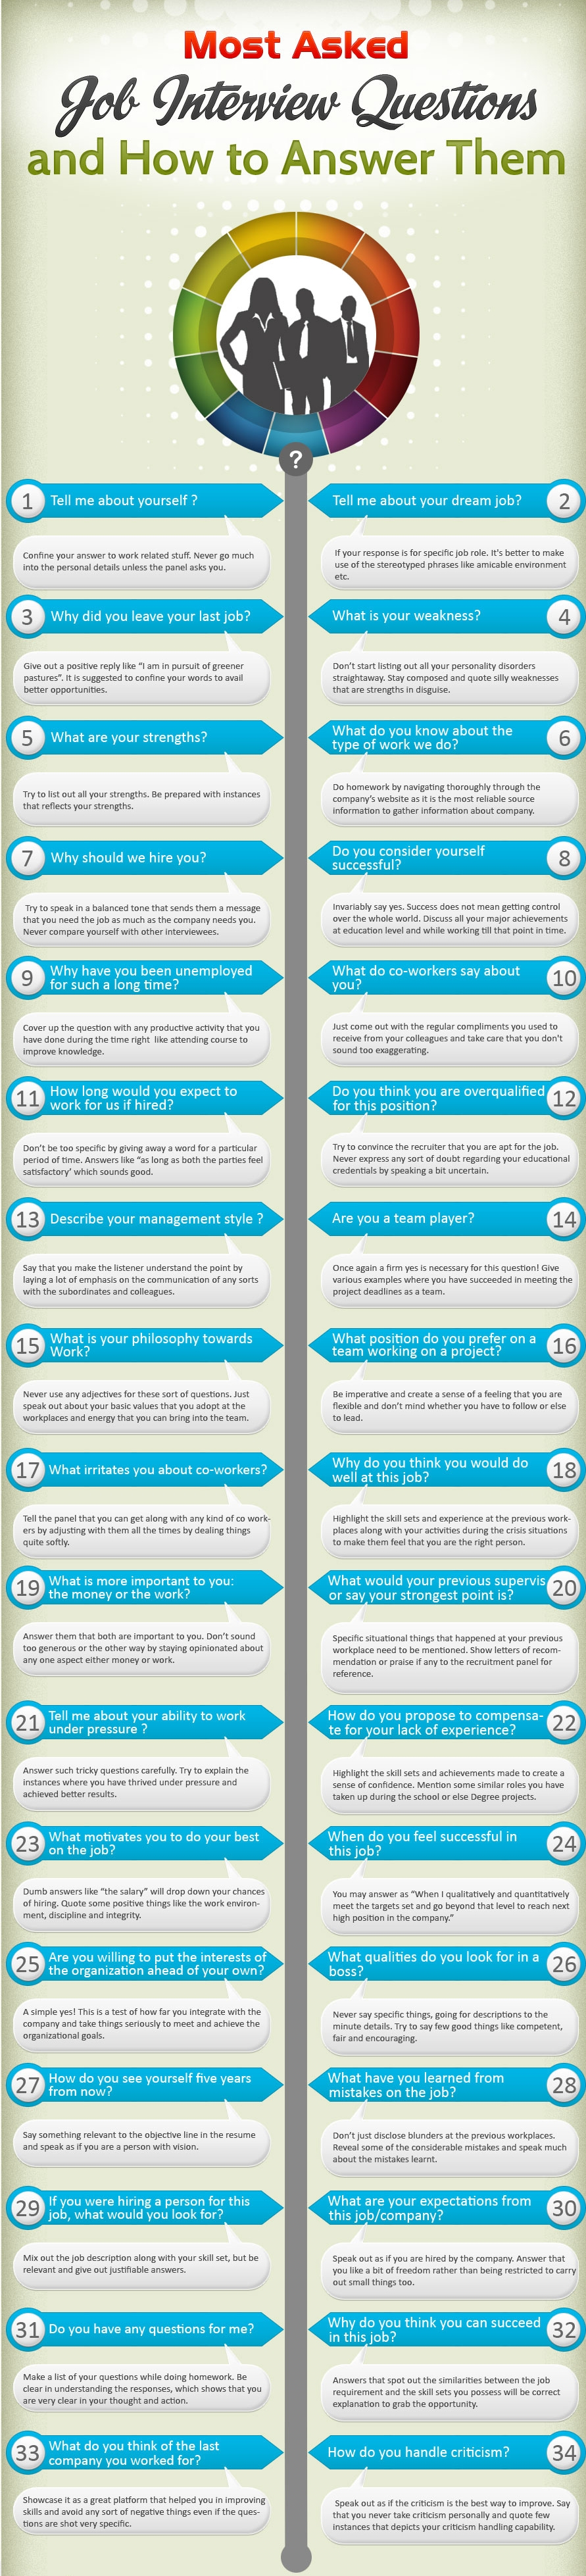 Most-Asked-Job-Interview-Questions-and-How-to-Answer-Them